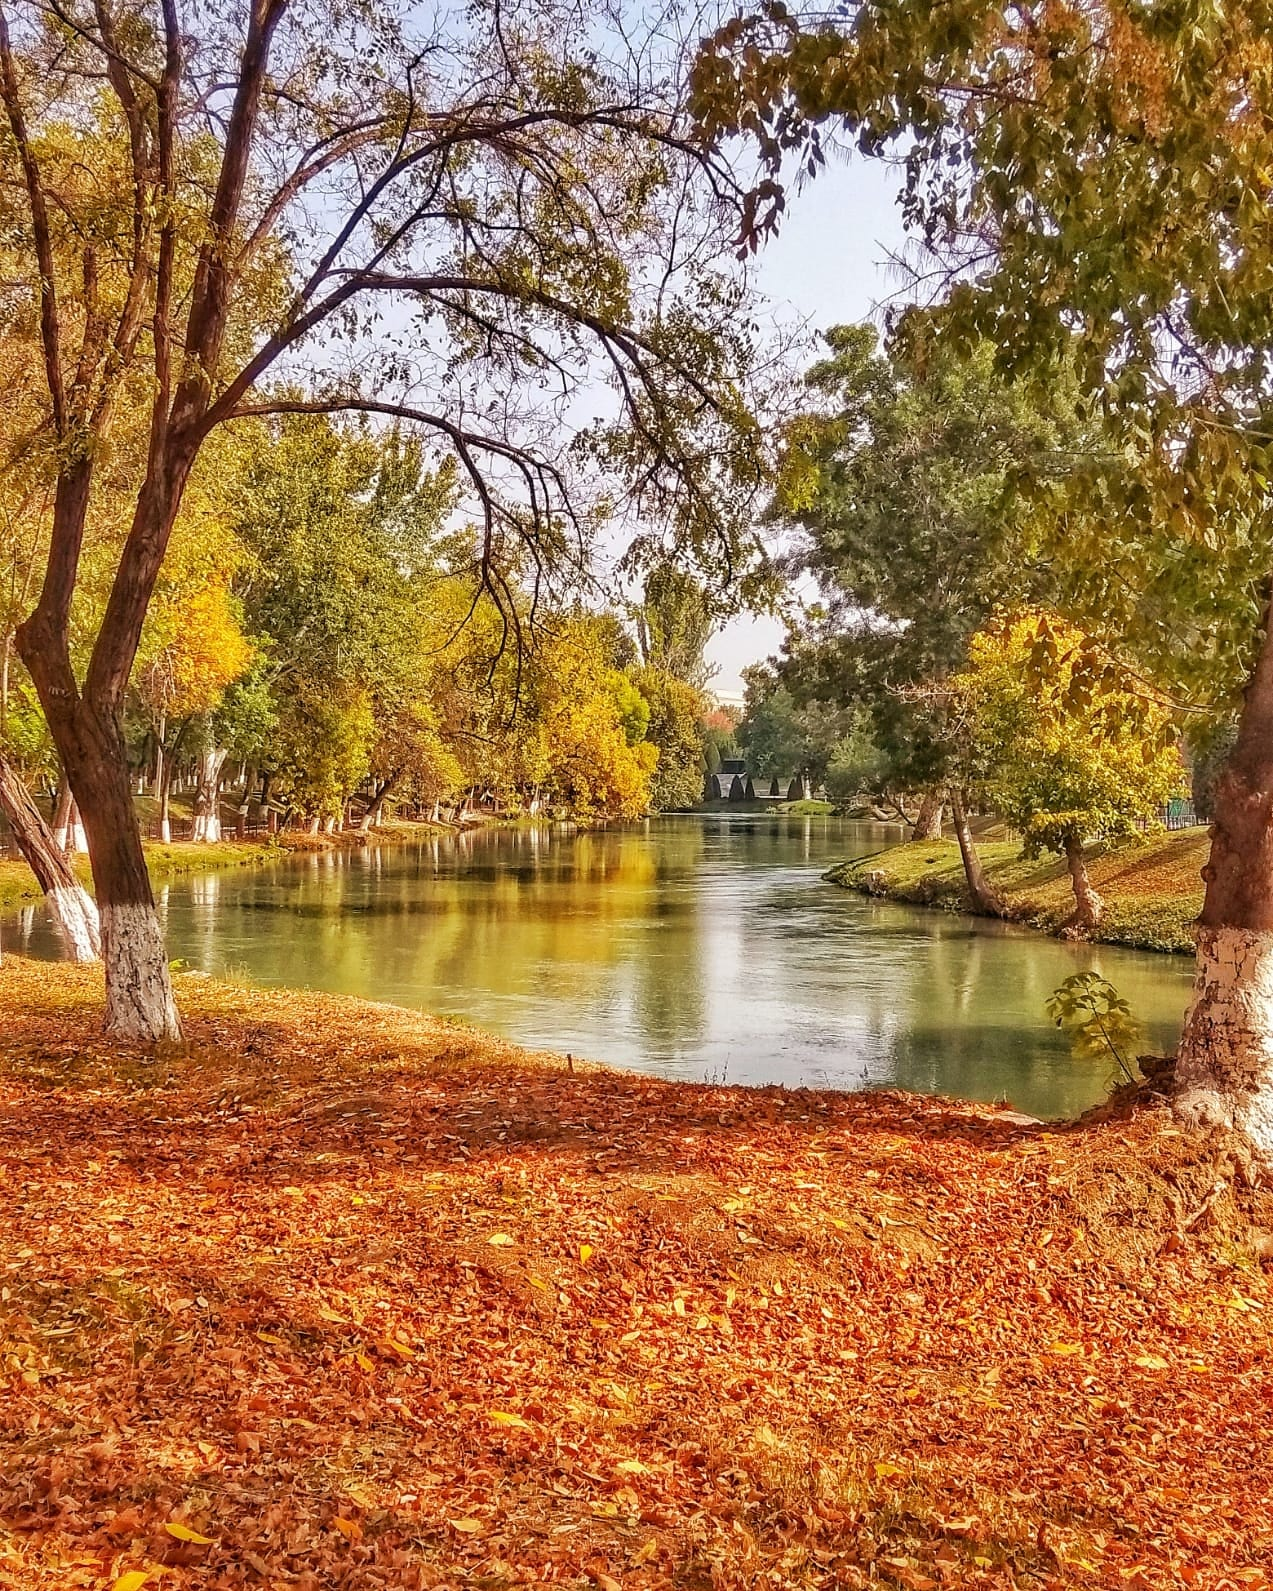 There are many parks in Tashkent, going for a walk in one of the beautiful parks is one of the best things to do in Tashkent, Uzbekistan.